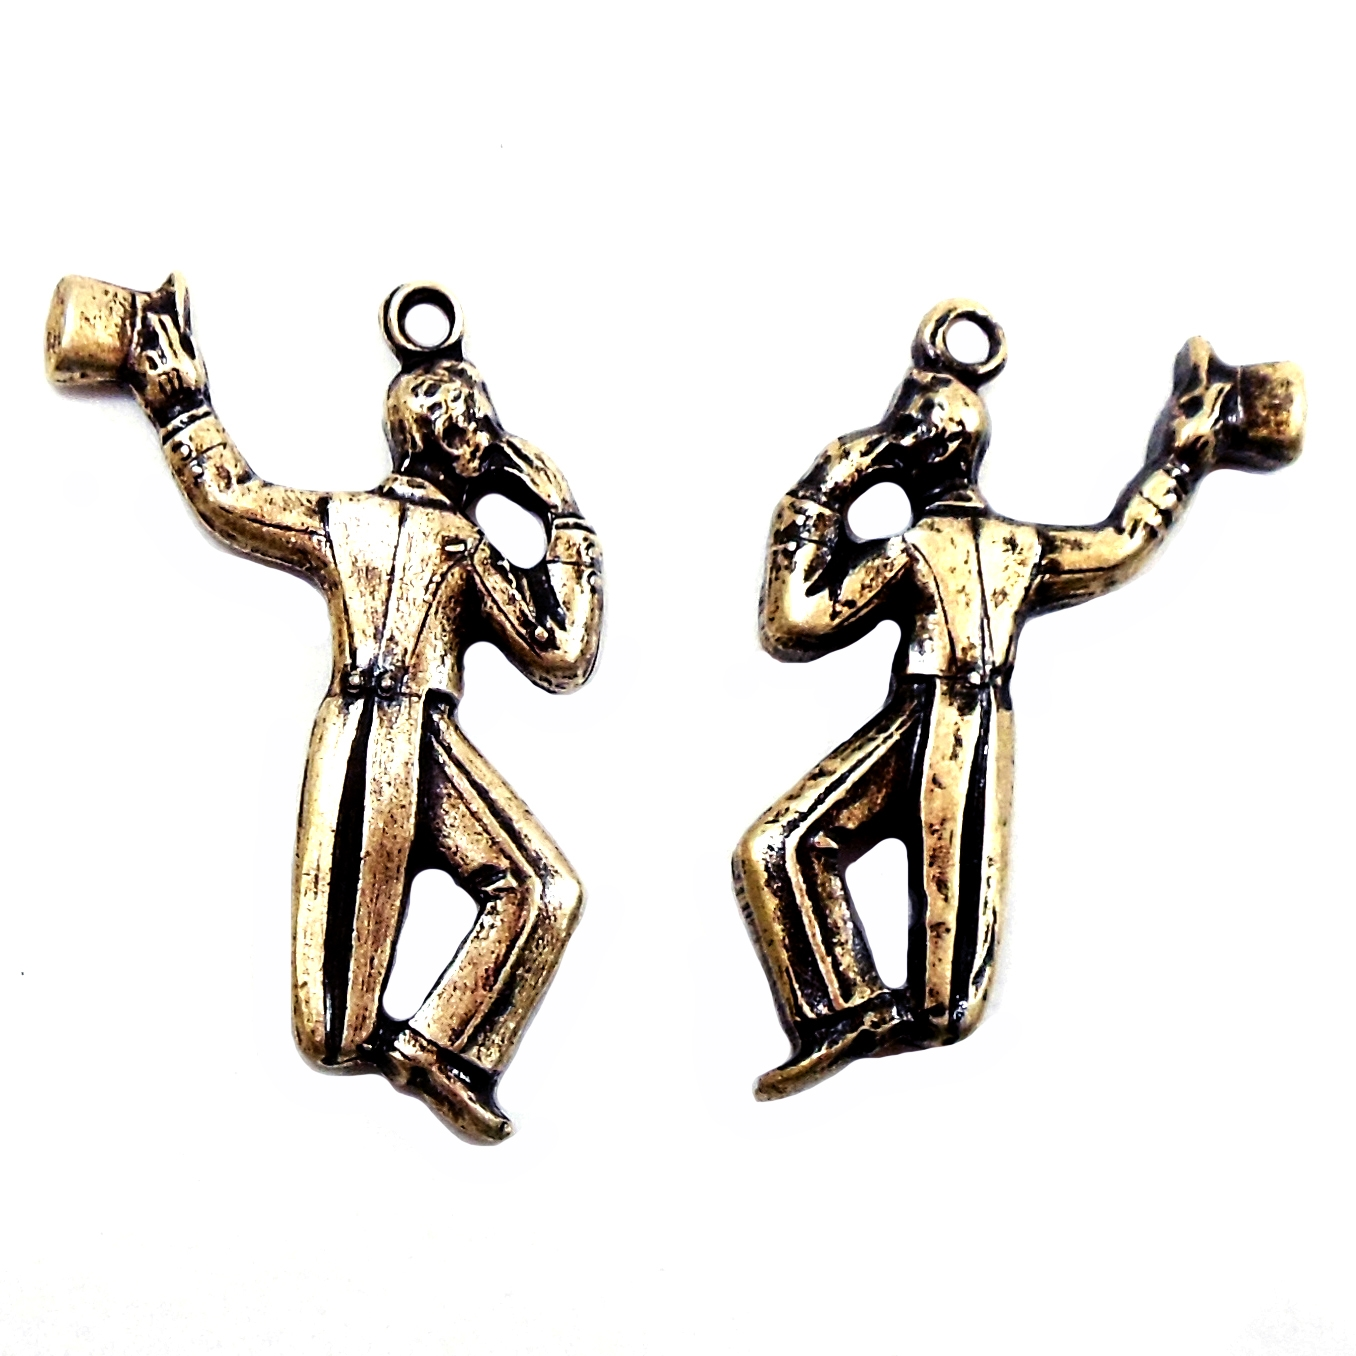 Dancers, charms, Brass ox, 03220, antique brass, top hats, dancing men, charm, earrings, ear drops, jewelry supplies, jewelry making, Bsue Boutiques